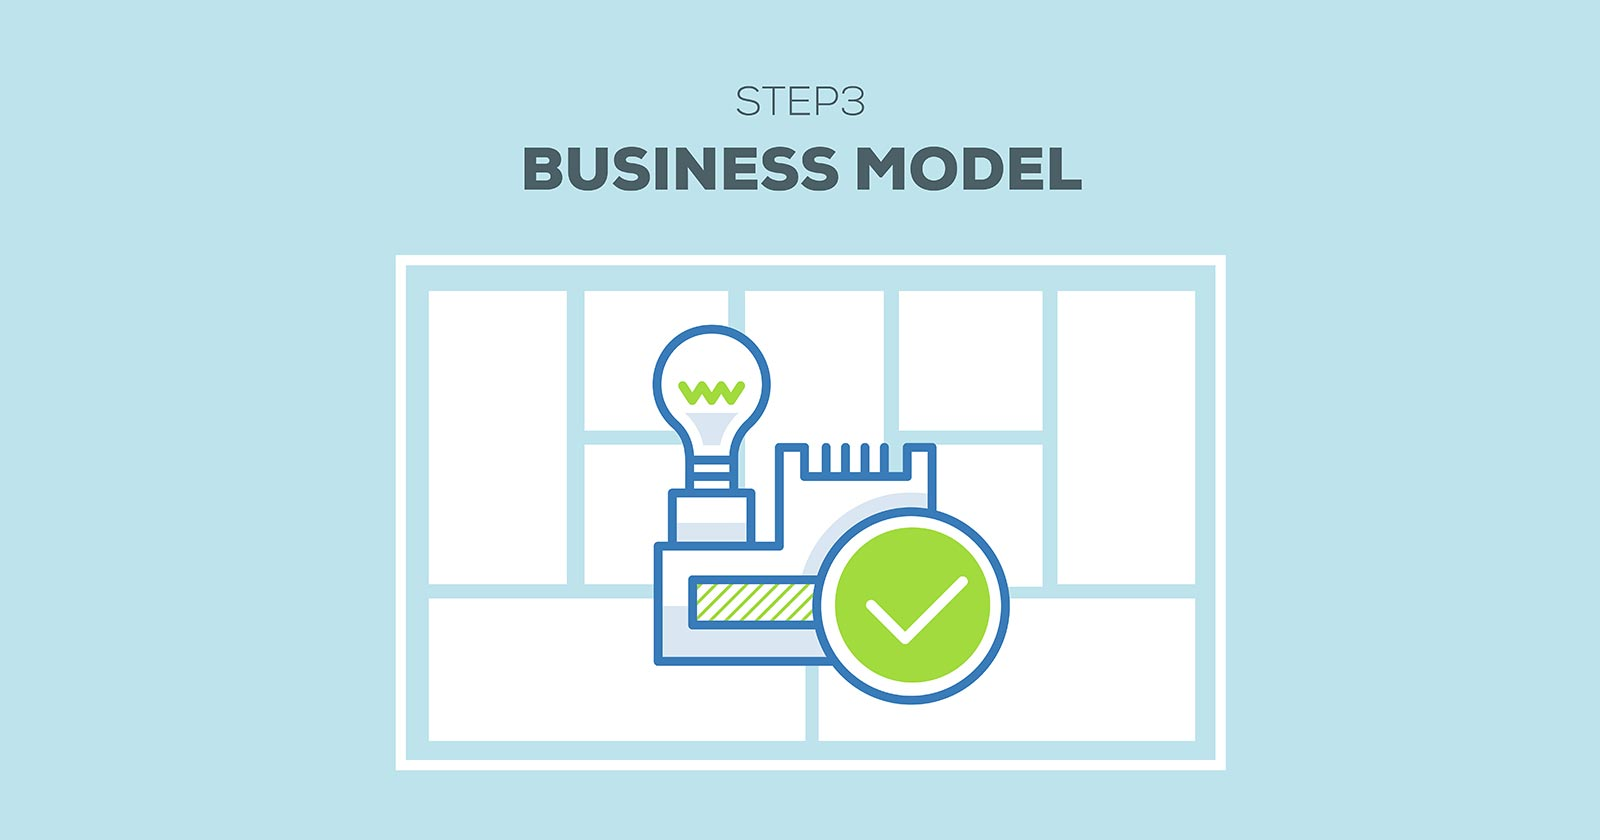 Step 3 Draft Your Business Model